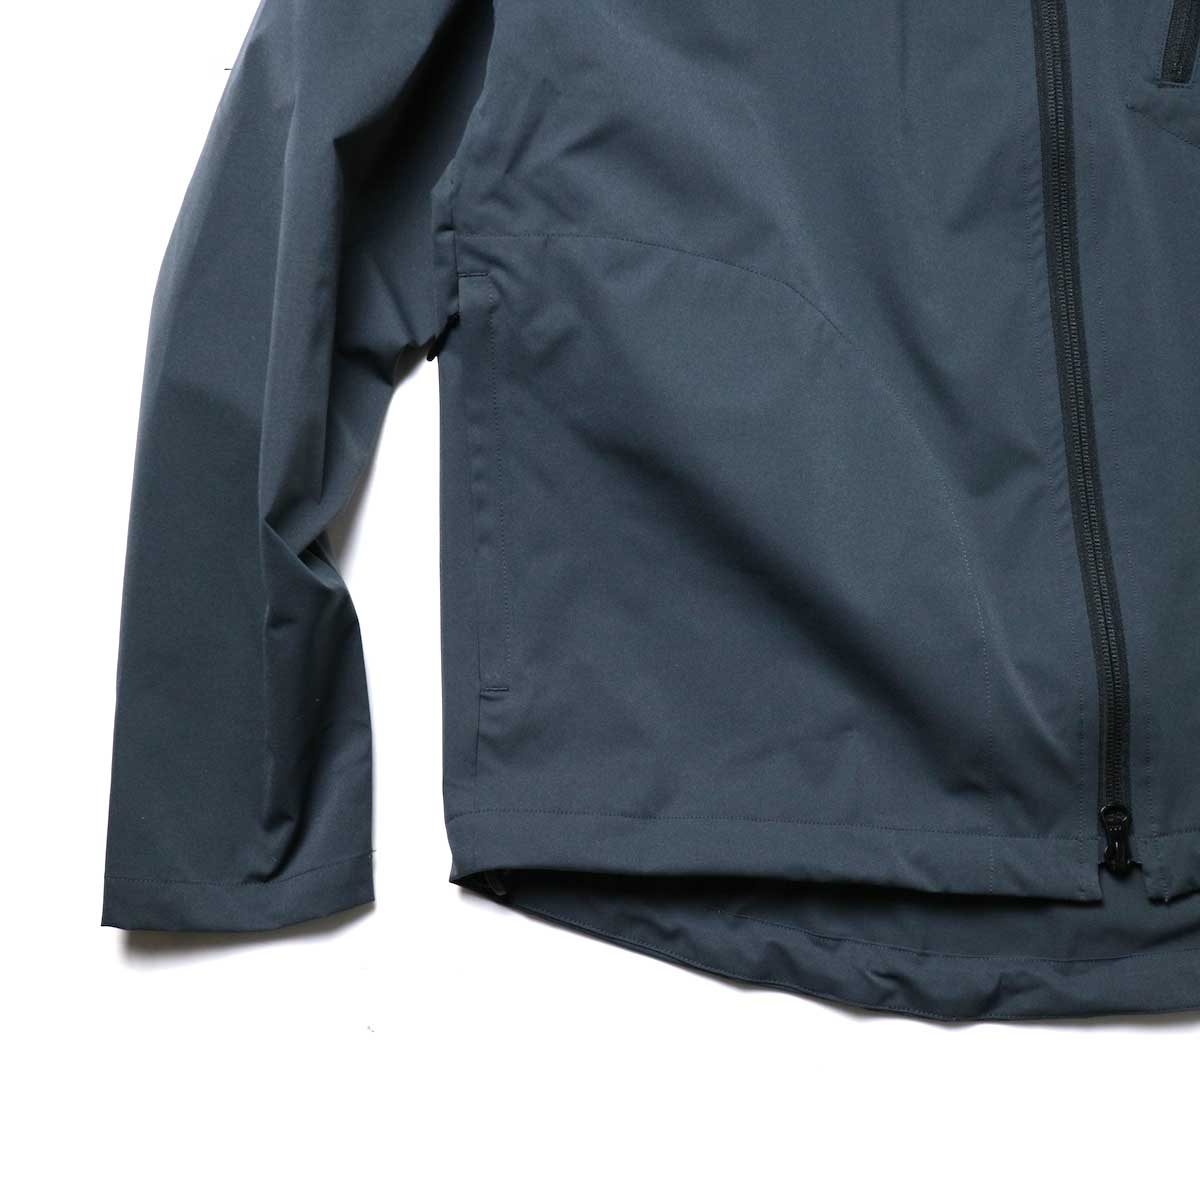 South2 West8 / Boulder Shirt -Poly Stretch Twill (Charcoal)袖、裾